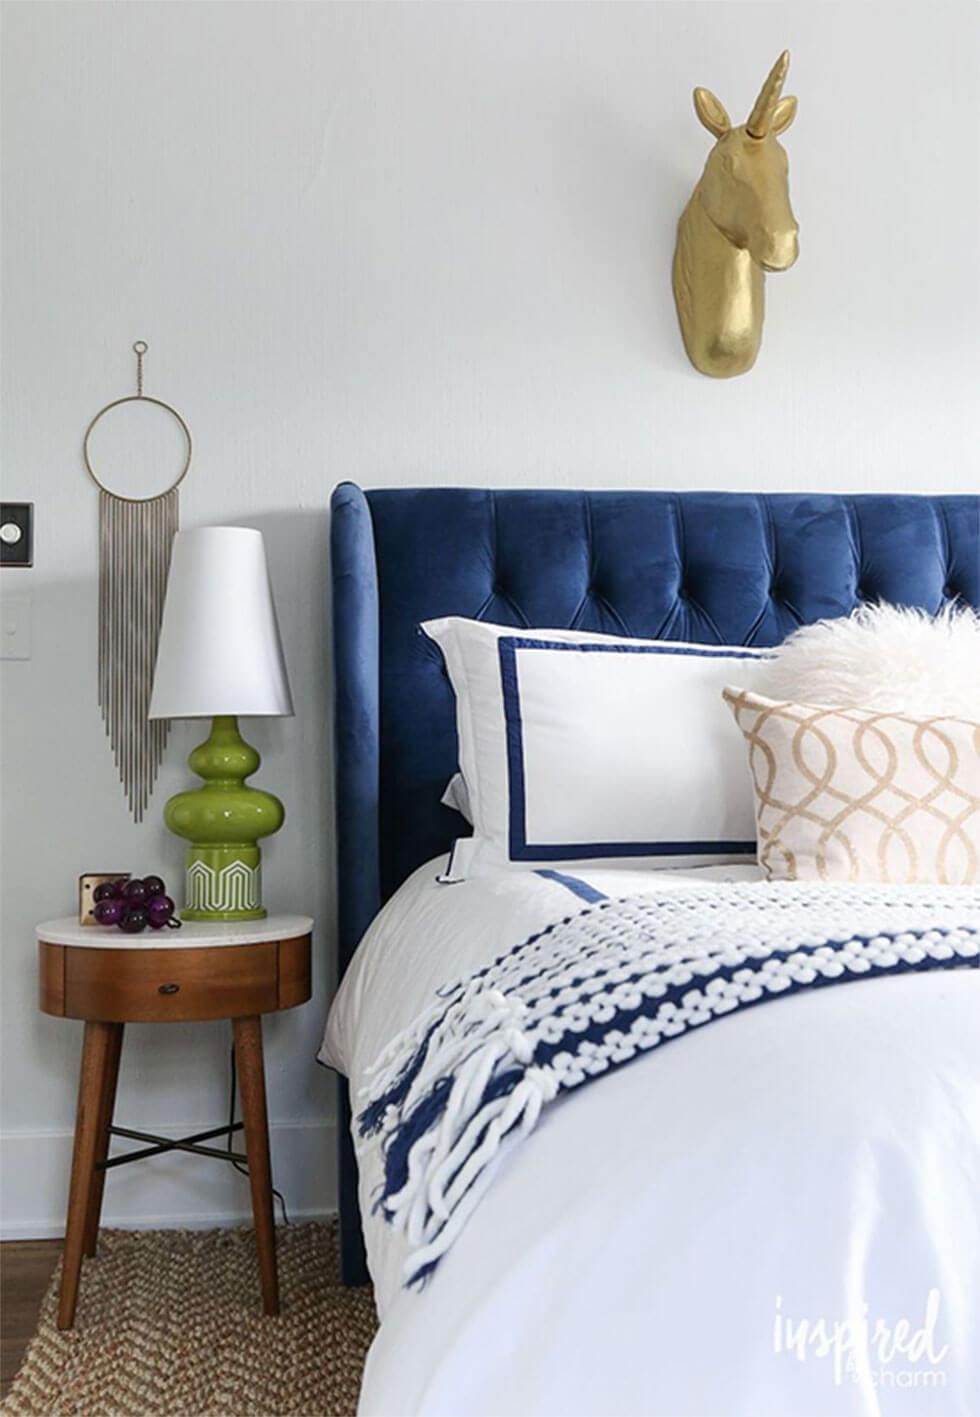 Classic Blue velvet headboard in bedroom with blue and white accents